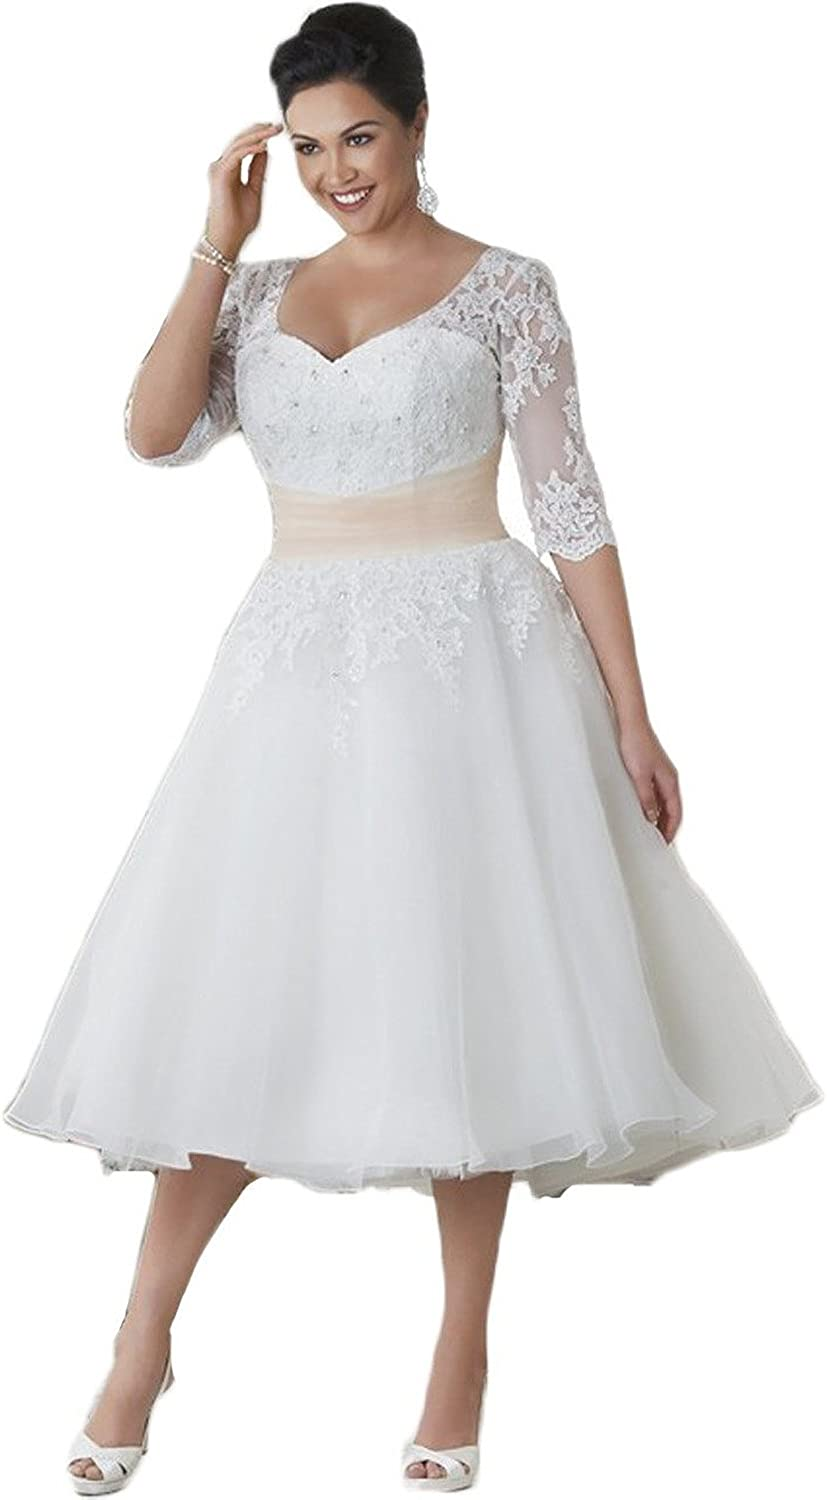 Lorderqueen Women\'s Half Sleeve Short Lace Wedding Dresses Plus Size for  Bride Gown